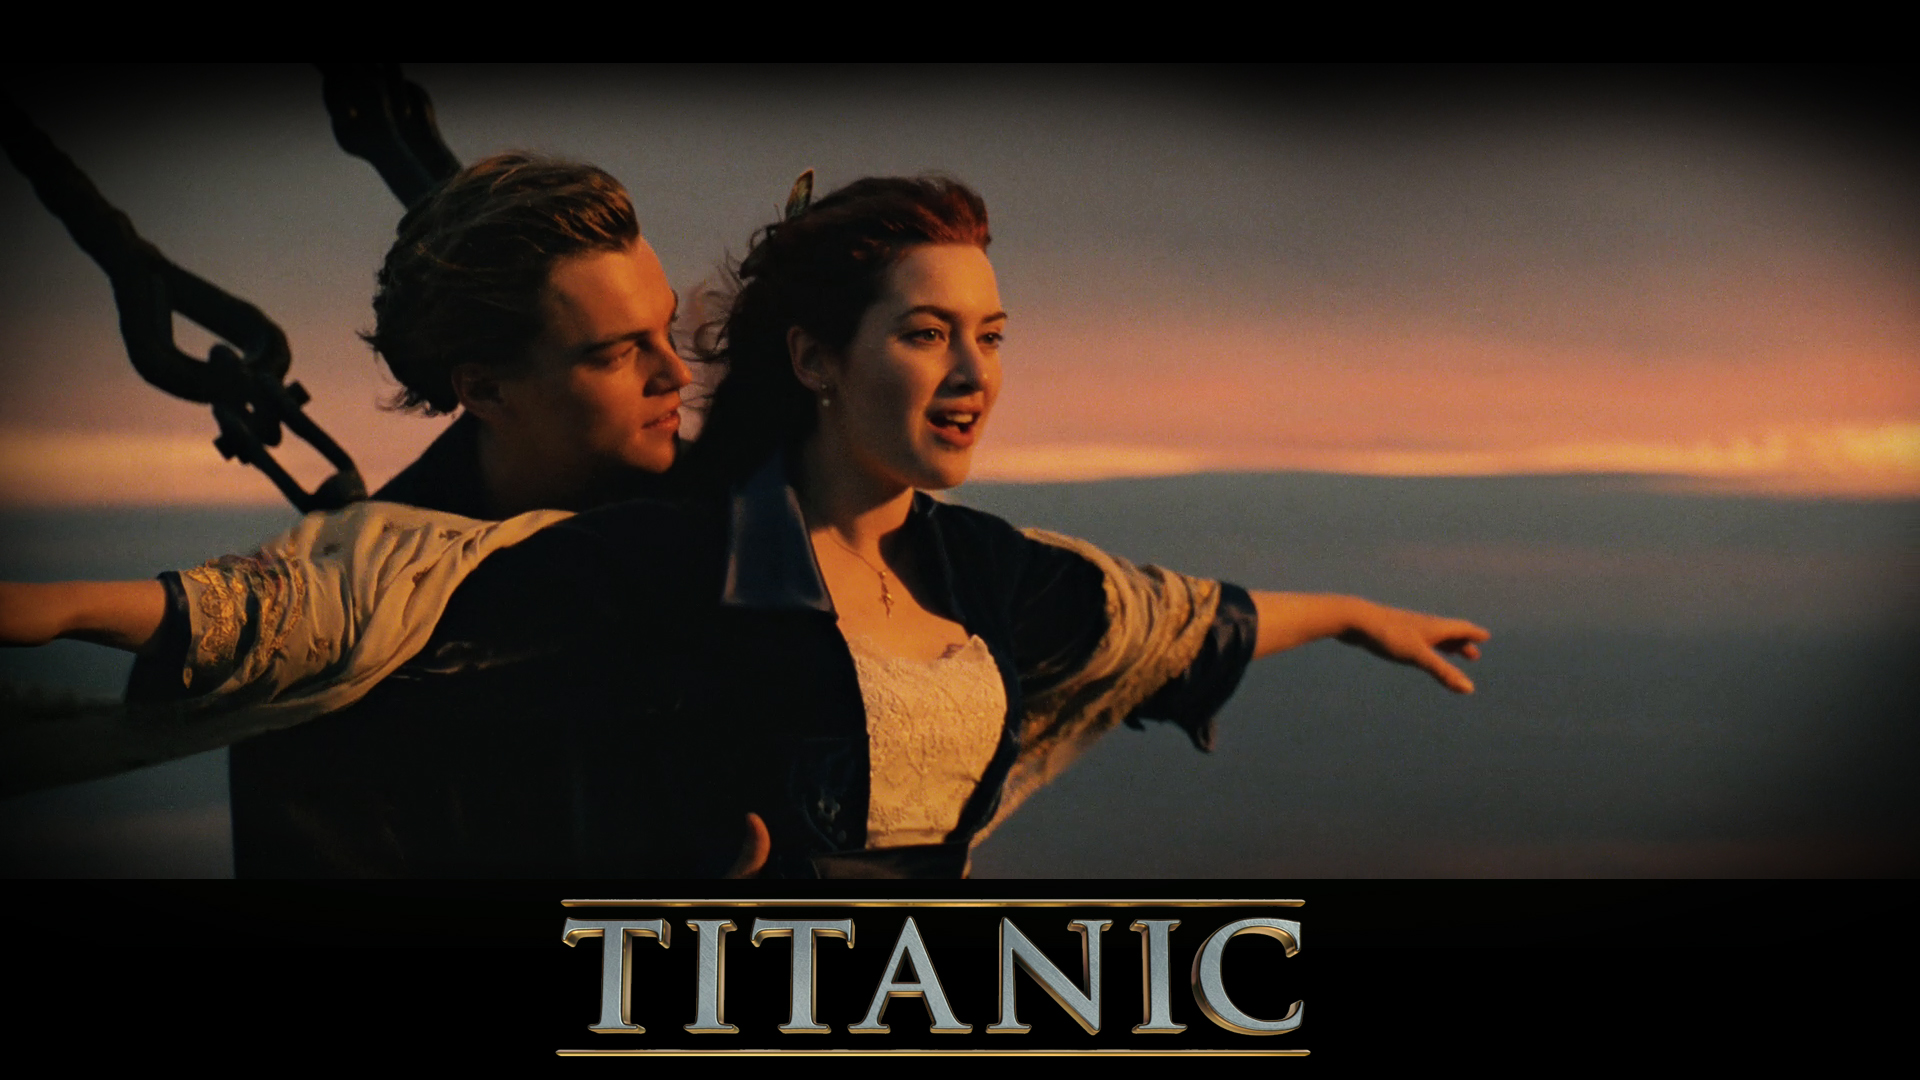 Titanic Movie Beautiful HD Wallpapers High Quality  All HD Wallpapers